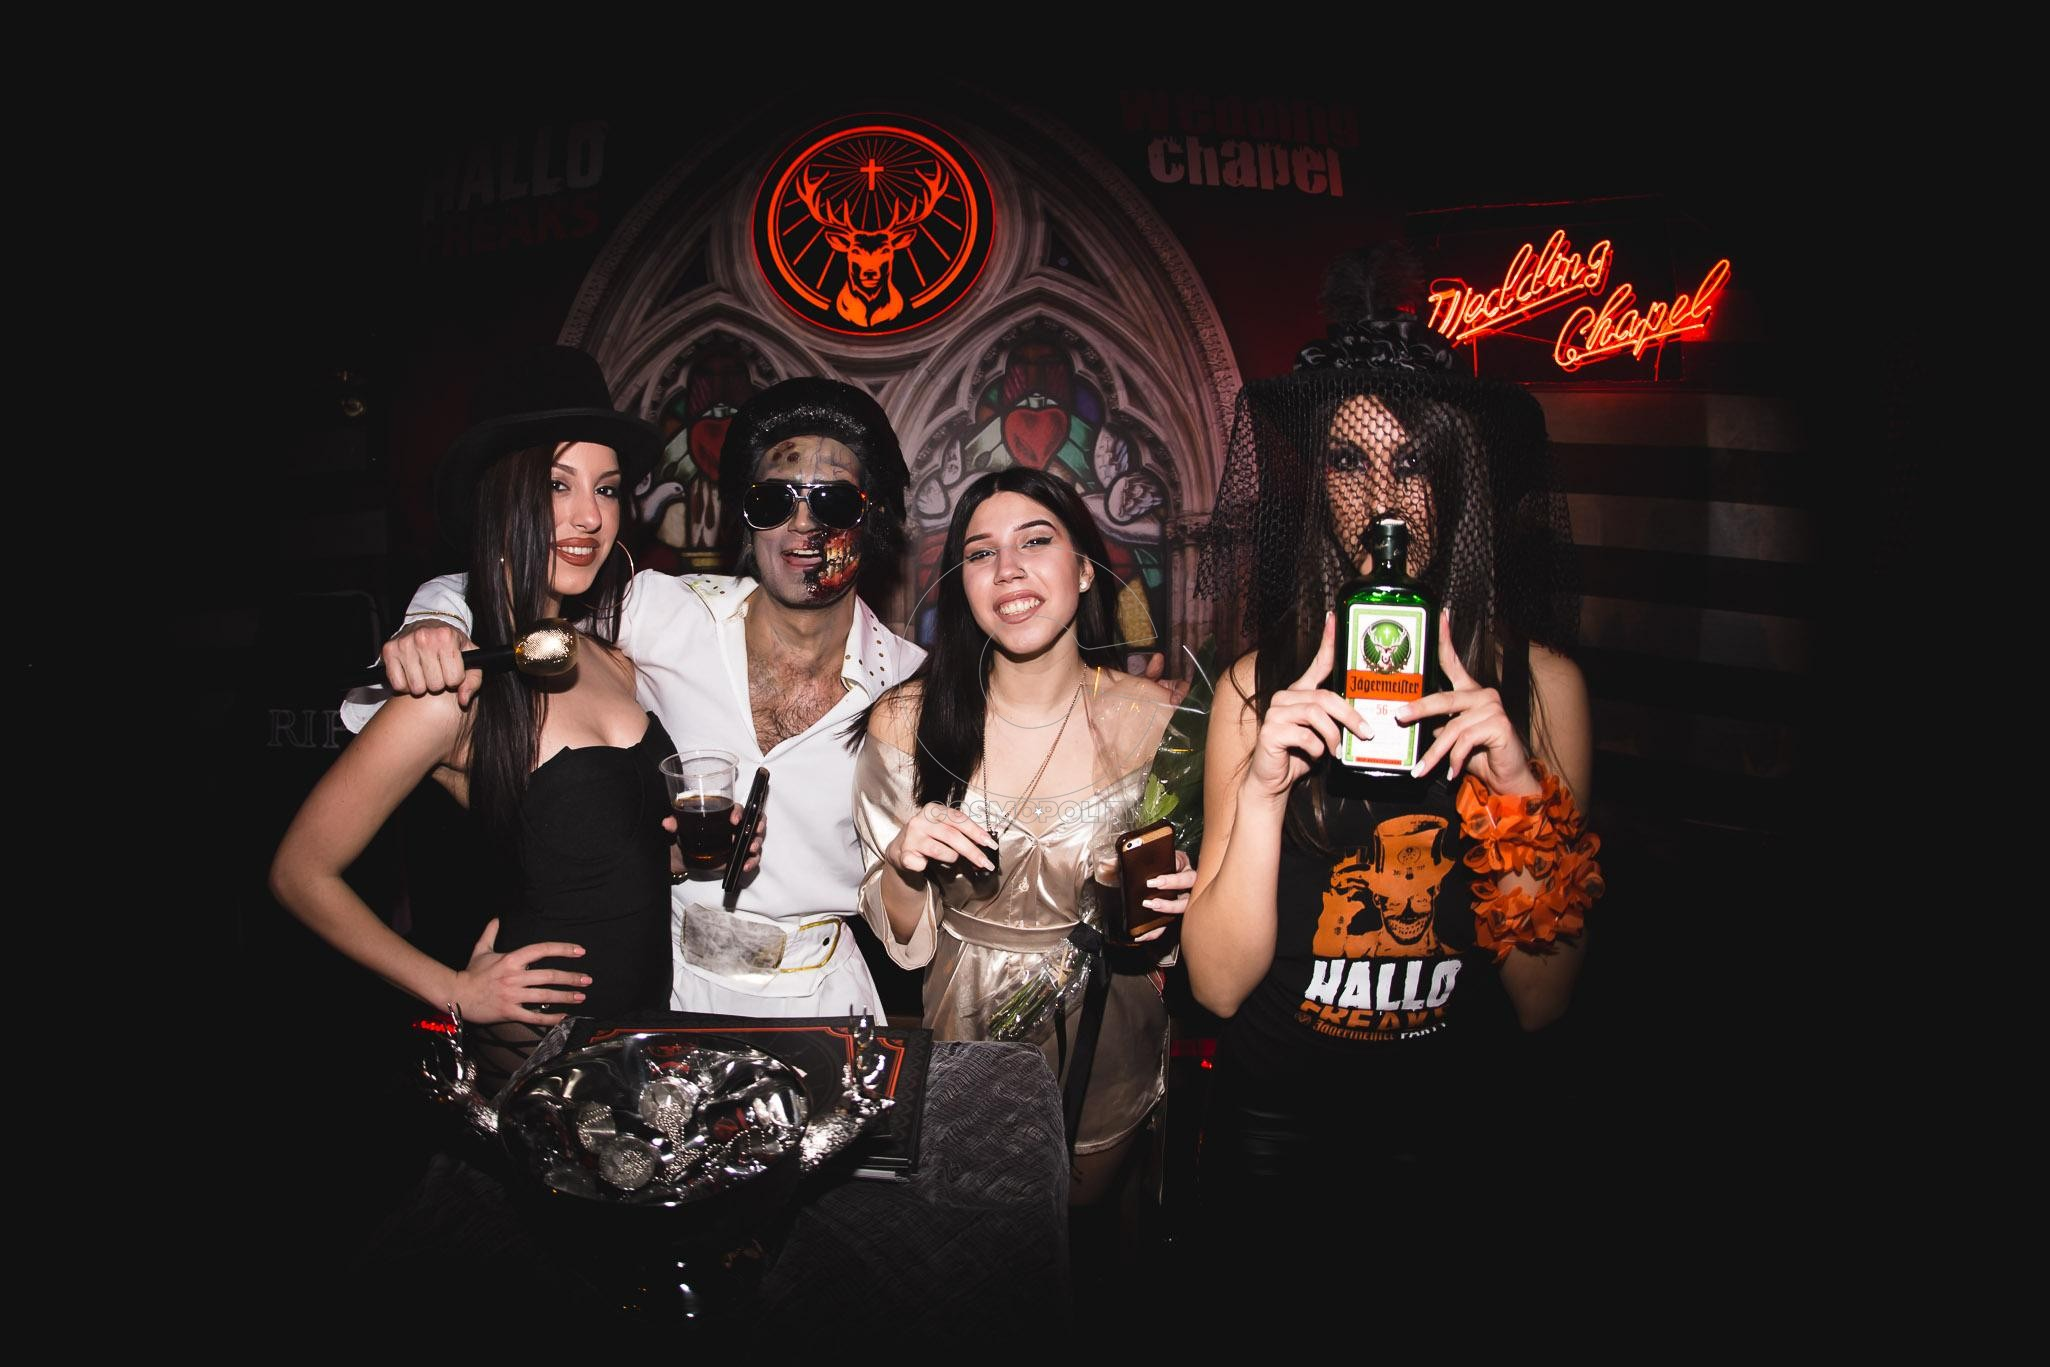 Photos by Red Carpet - Photographers: Thanasis Afxentidis (https://www.facebook.com/Afxentidis) & Marios Migkos (https://www.facebook.com/mmigako?fref=ts) Hosted by: Jägermeister Greece (https://www.facebook.com/jagermeister.greece)